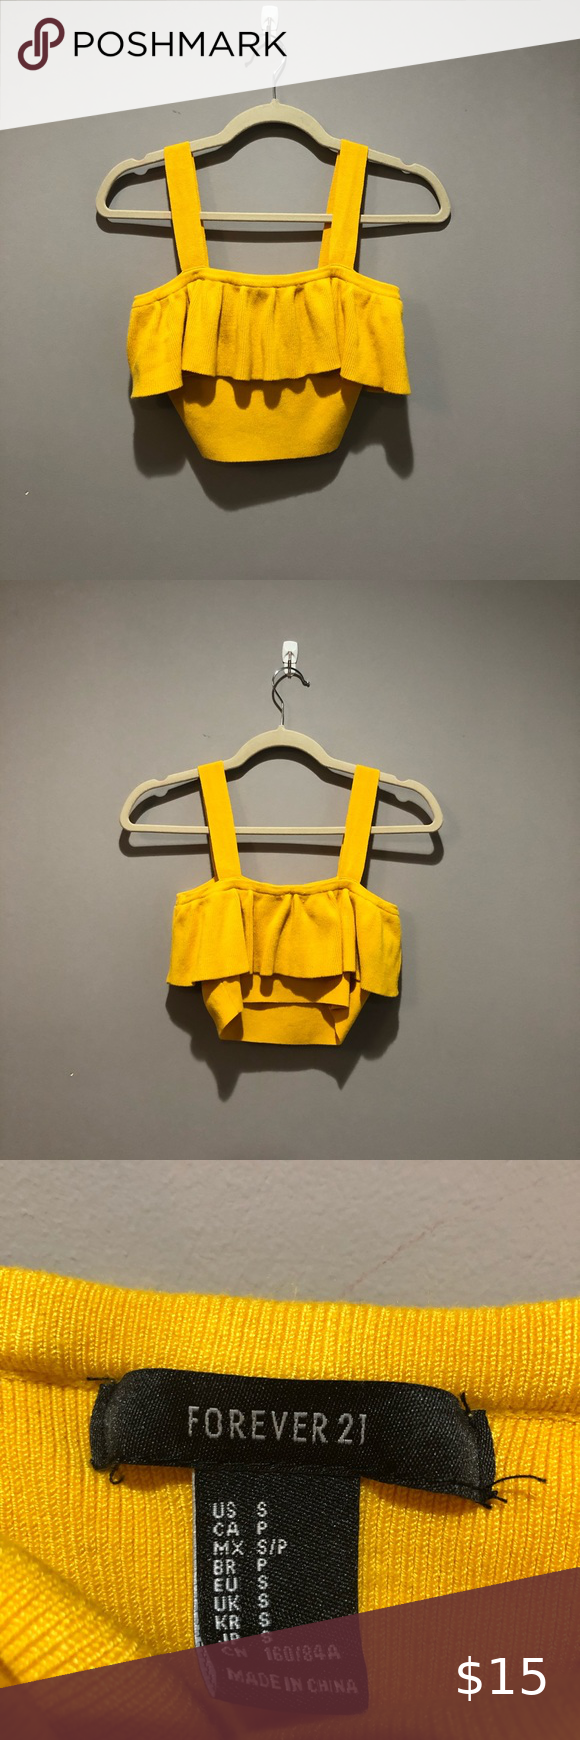 Sweet Mustard Cop Top In 2020 Things To Sell Clothes Design Cop